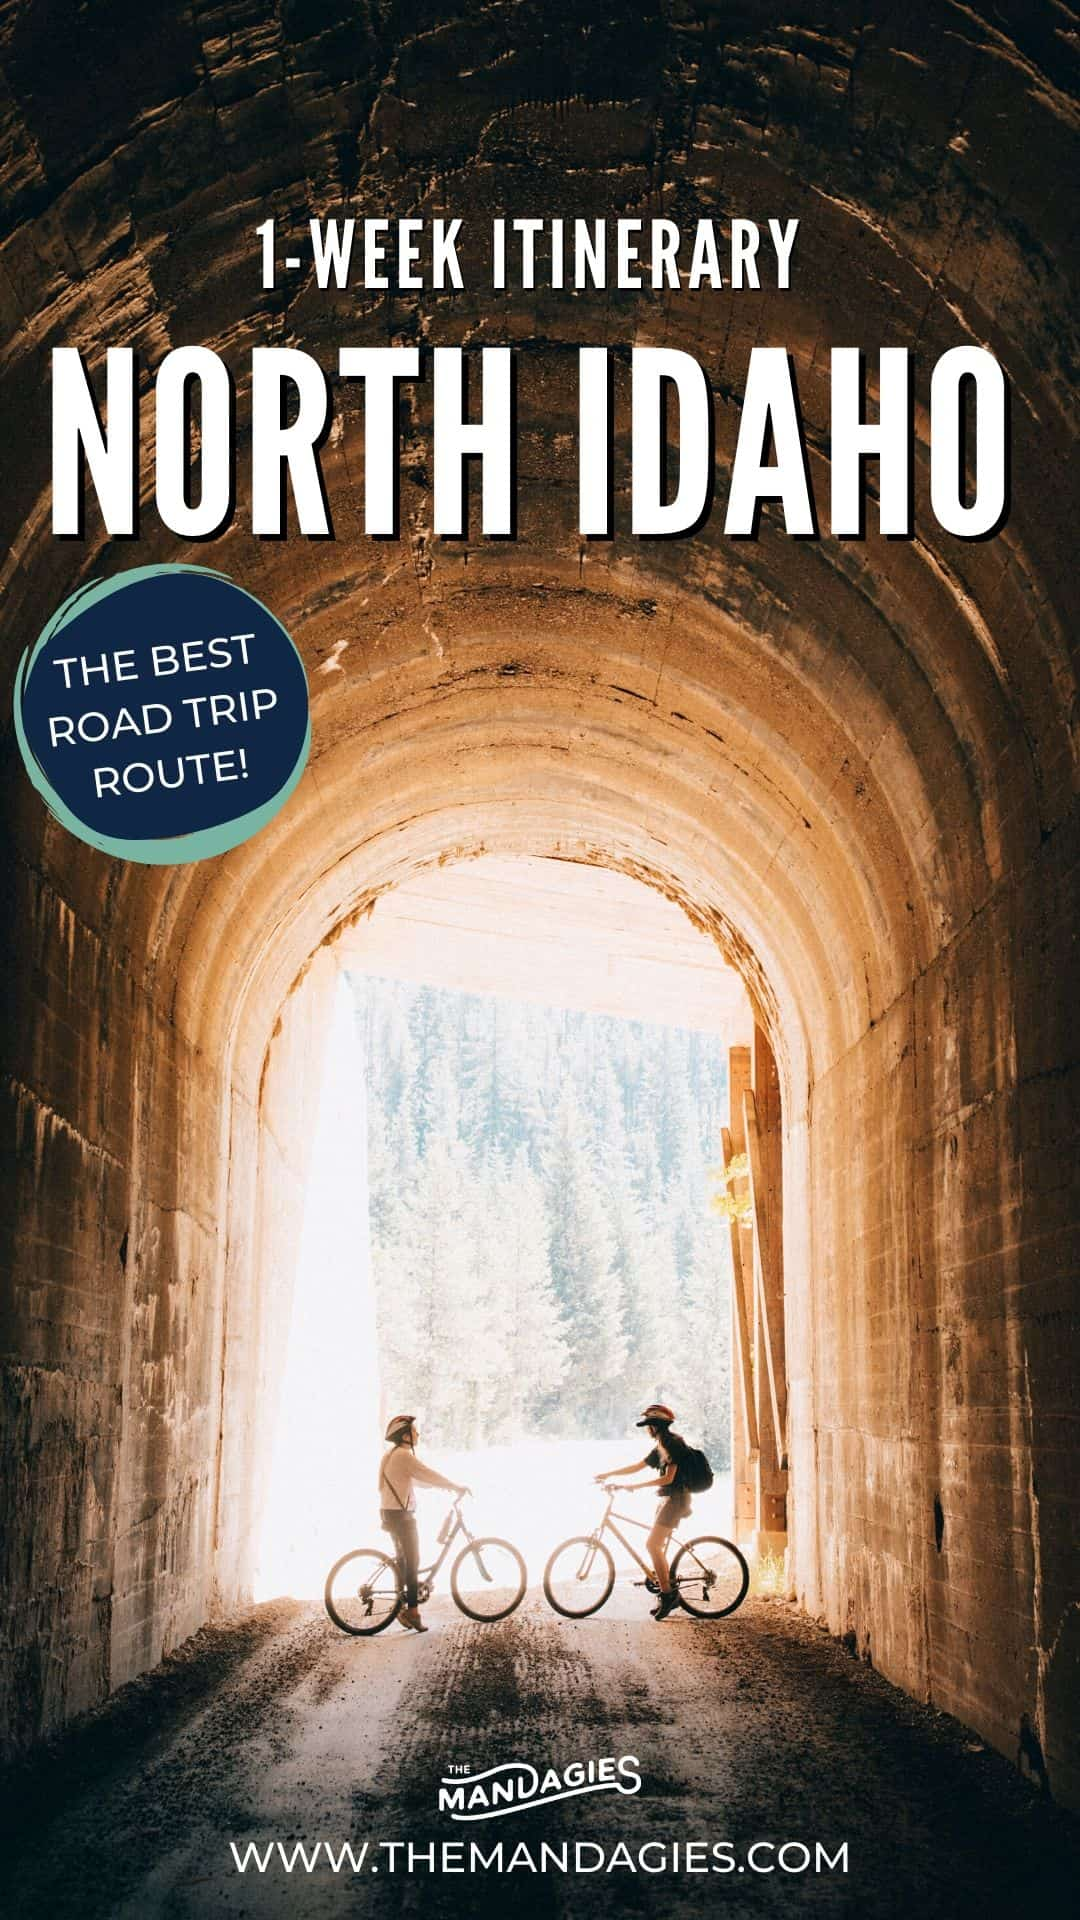 Looking for the best Idaho road rtip route in the Panhandle? You've come to the right place! We're hitting all the best stops, including Coeur d'Alene, Sandpoint, Priest Lake, the Selkirk Mountains, Lookout Pass, and so much more! Save this for your next adventure around the Inland northwest! #idaho #hiking #PNW #inlandnorthwest #coeurdalene #priestlake #selkirkmountains #Mountains #photography #landscape #roadtrips